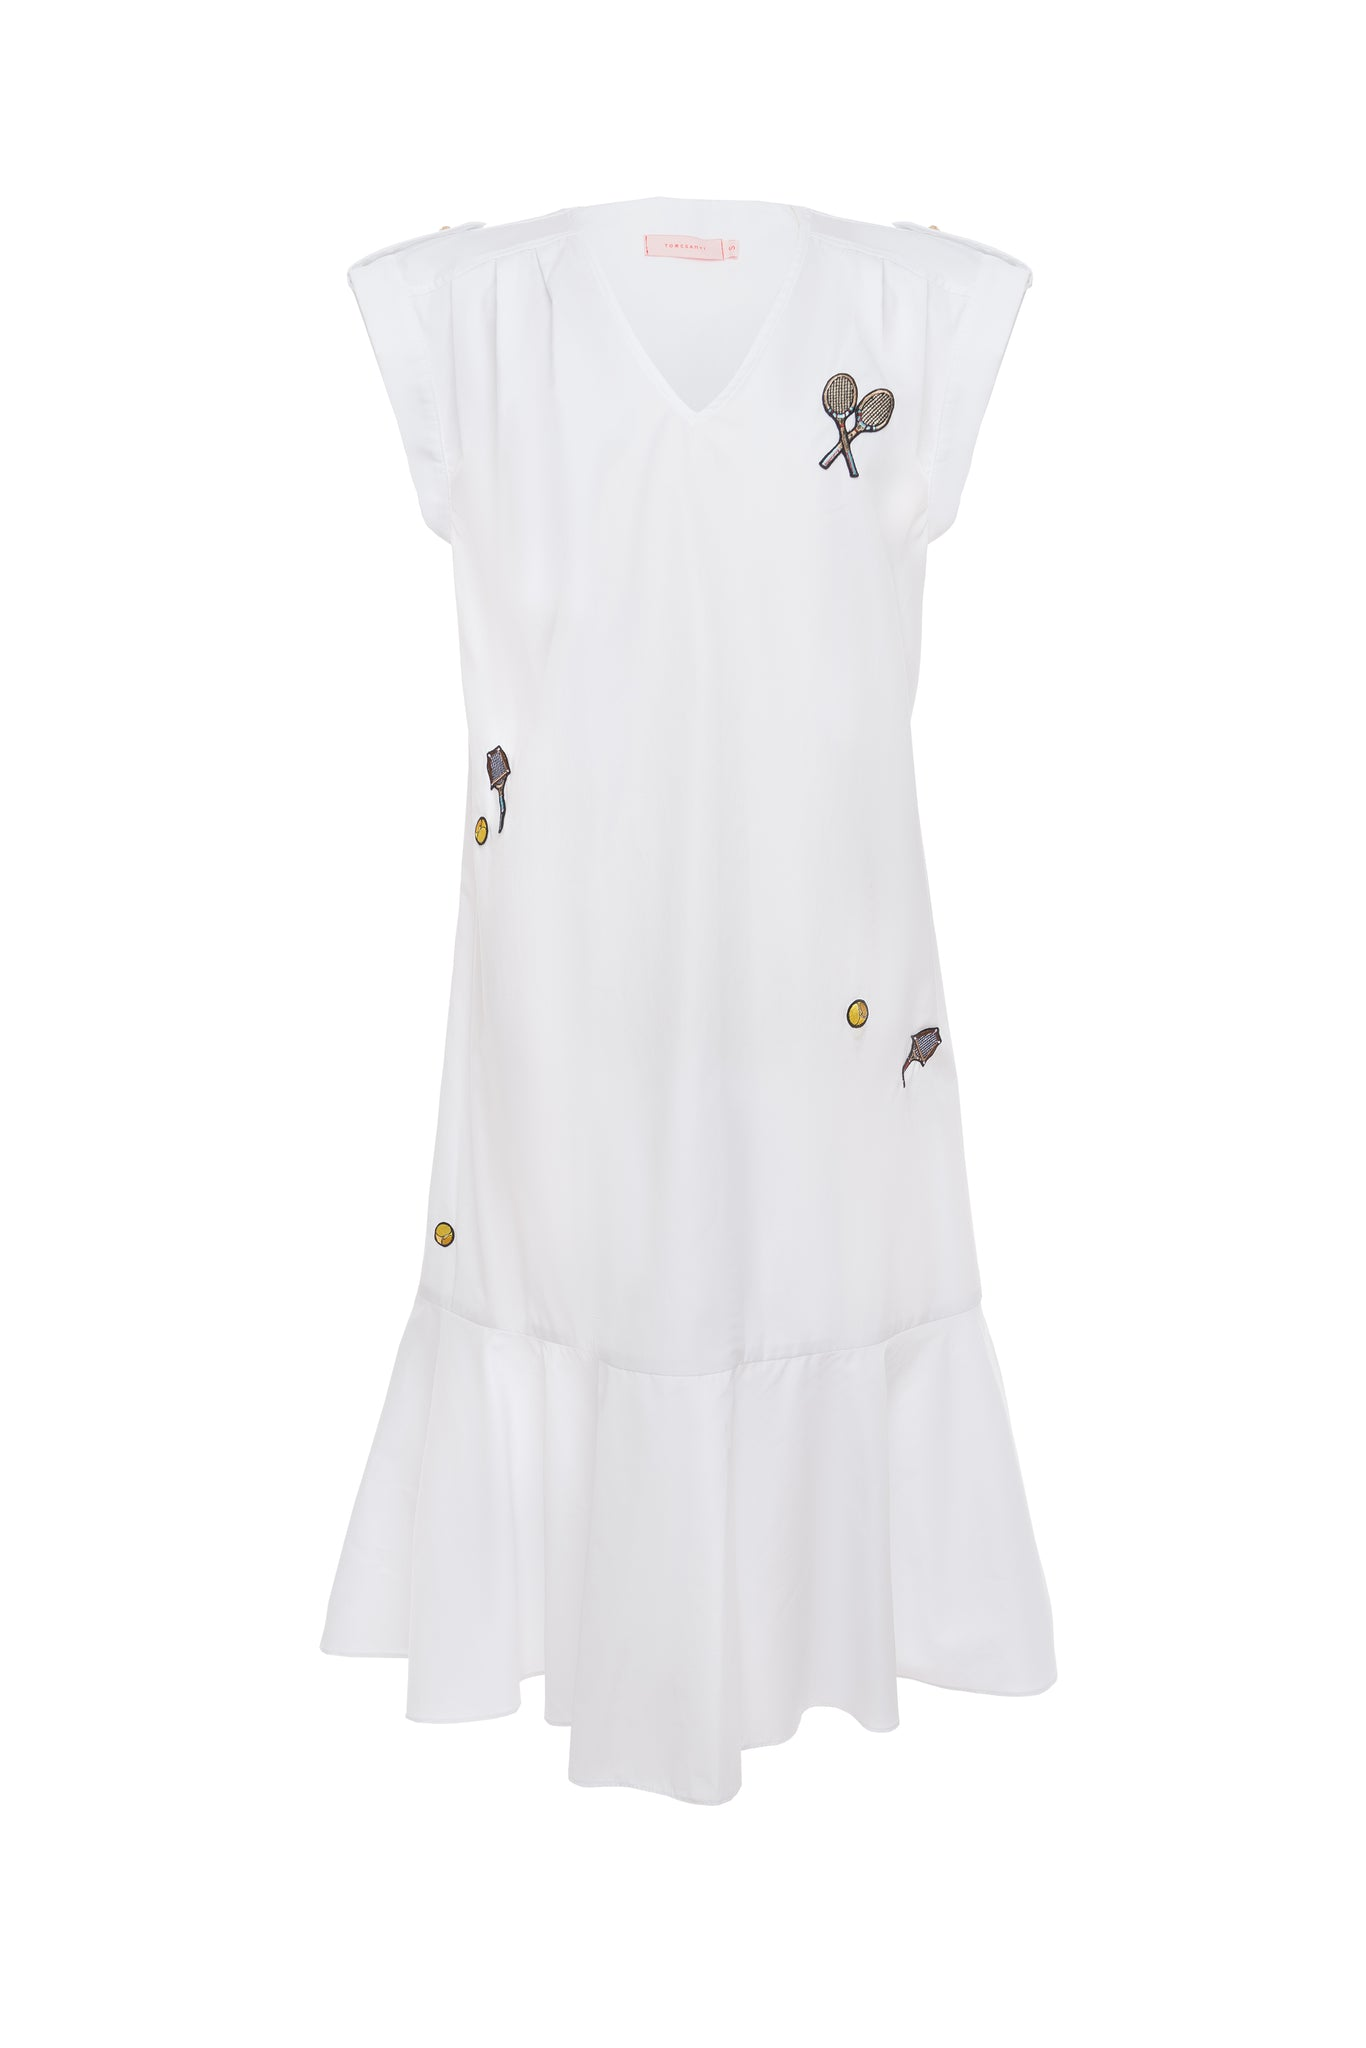 Williams Badge Detail Ruffle Tennis Dress